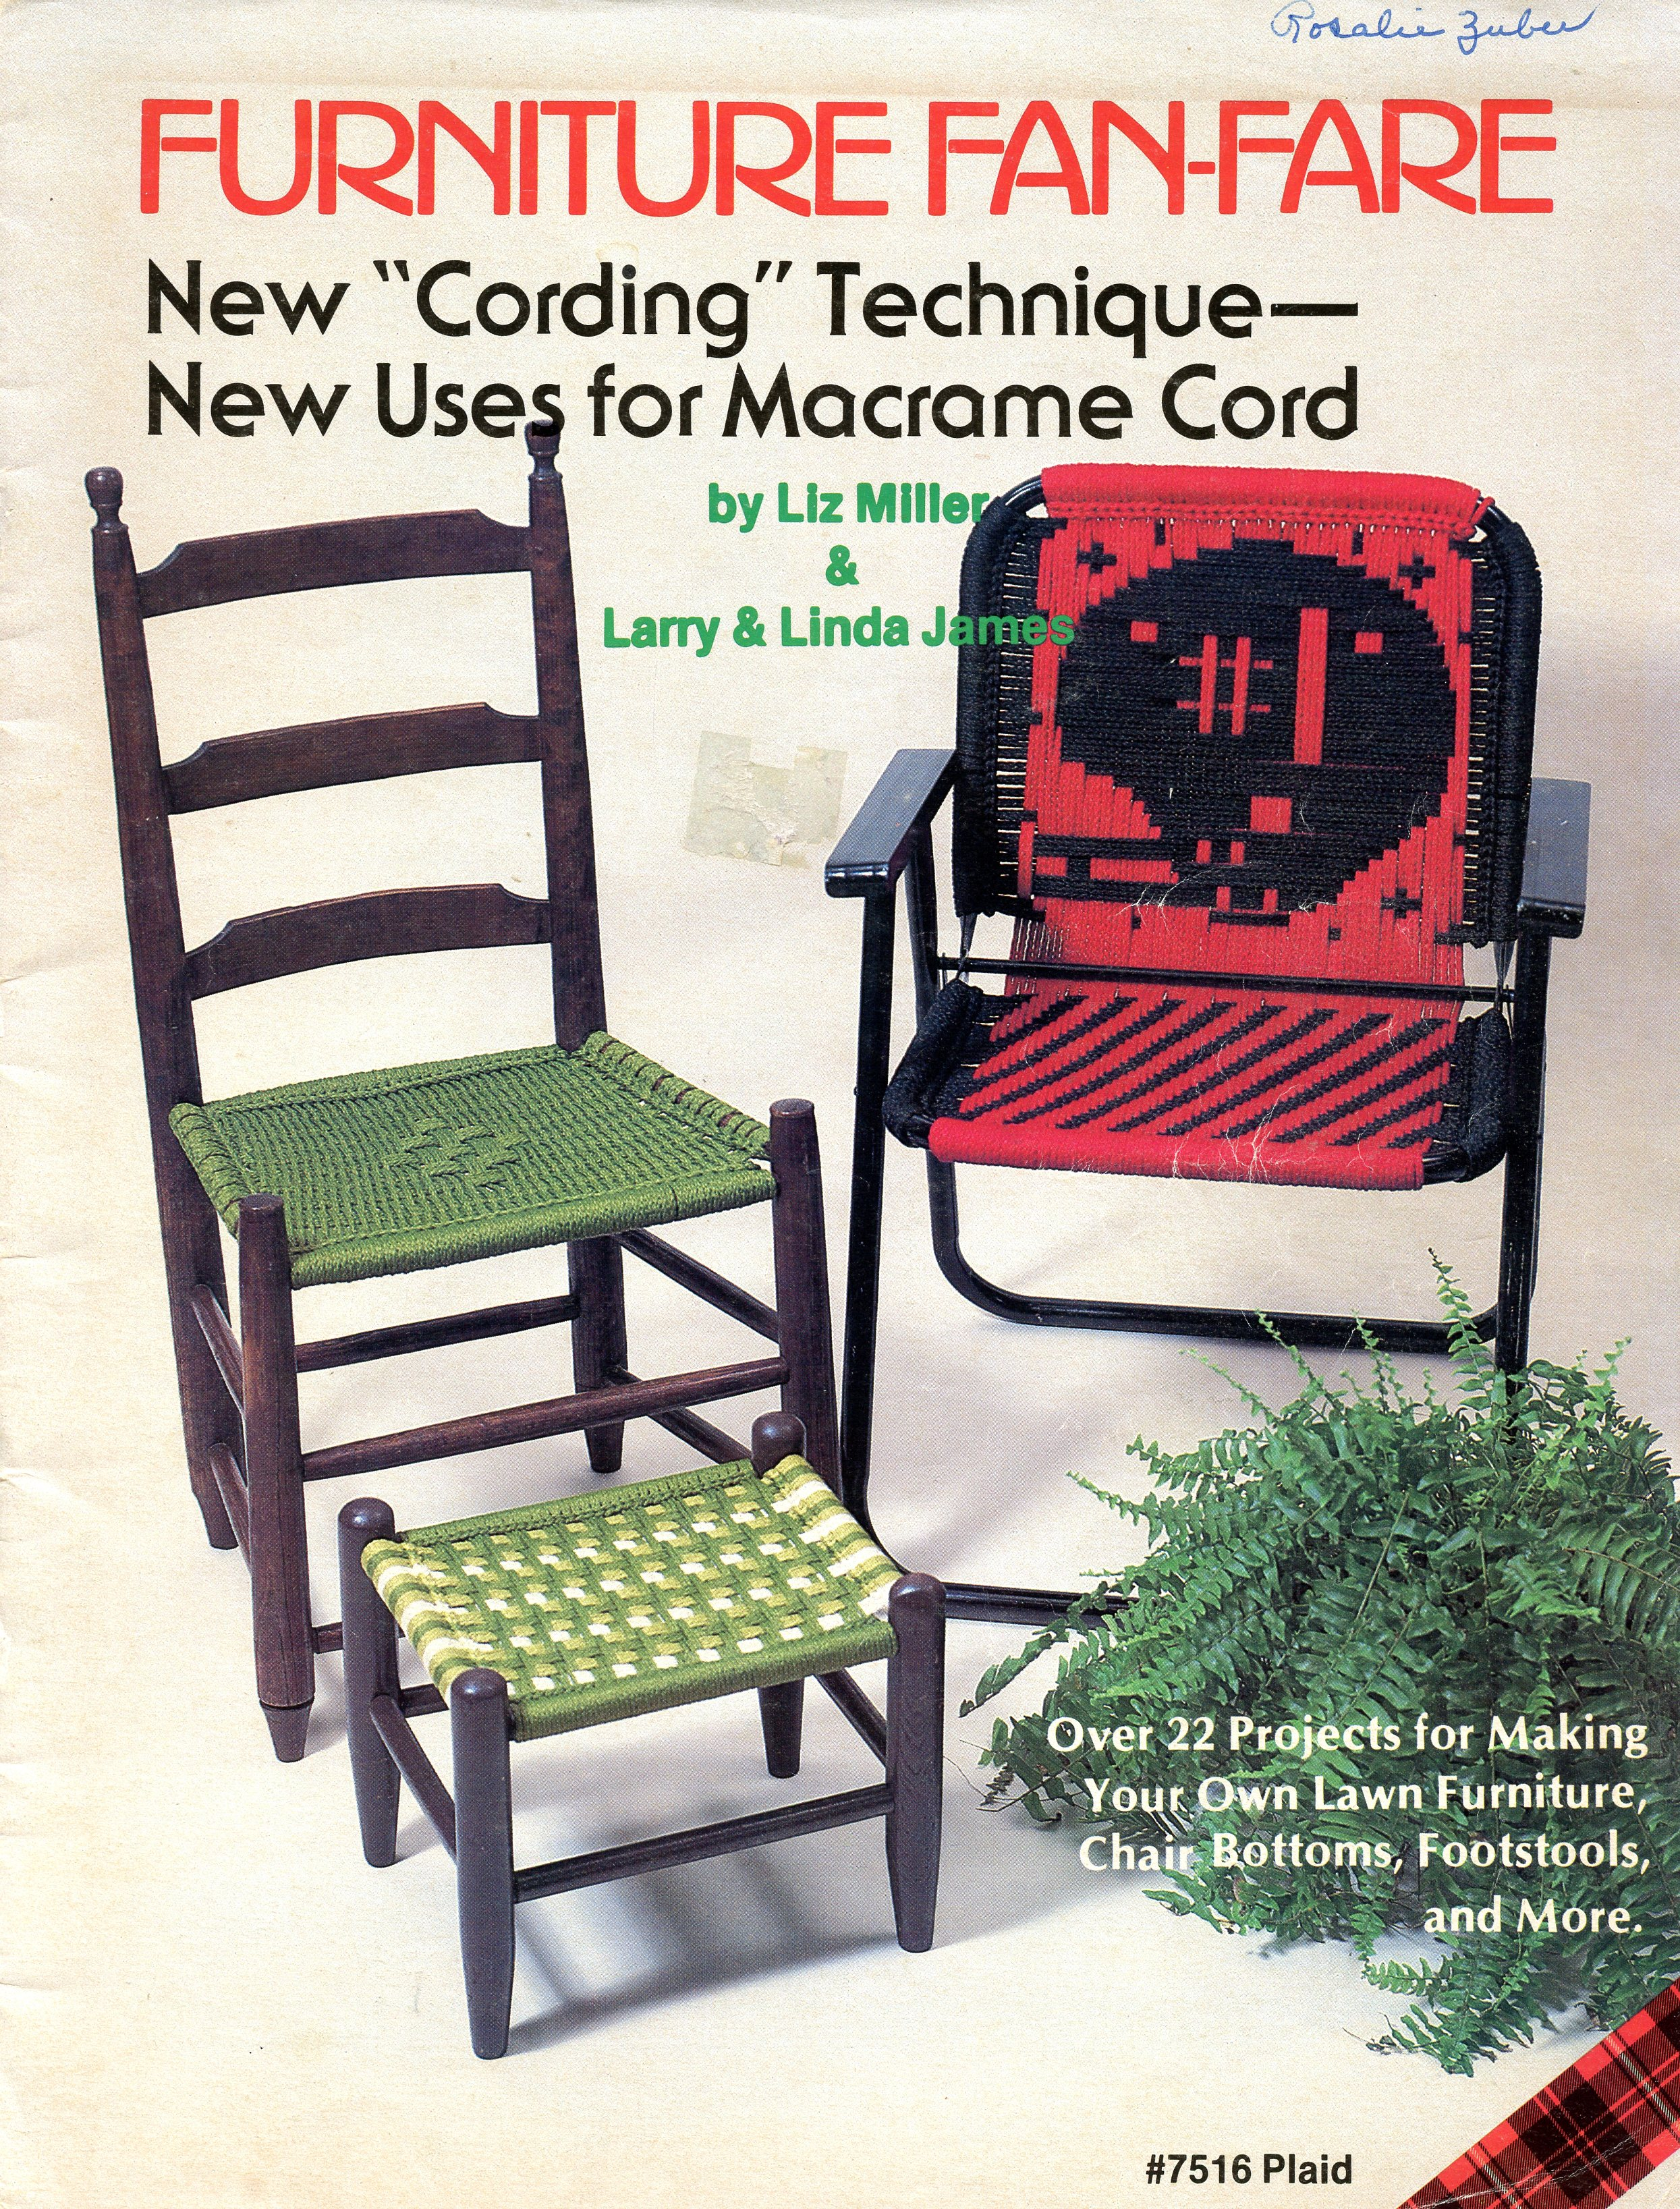 Macrame Furniture Book 1970s Macrame Patio Lawn Chair Ebook Starshop Vintage